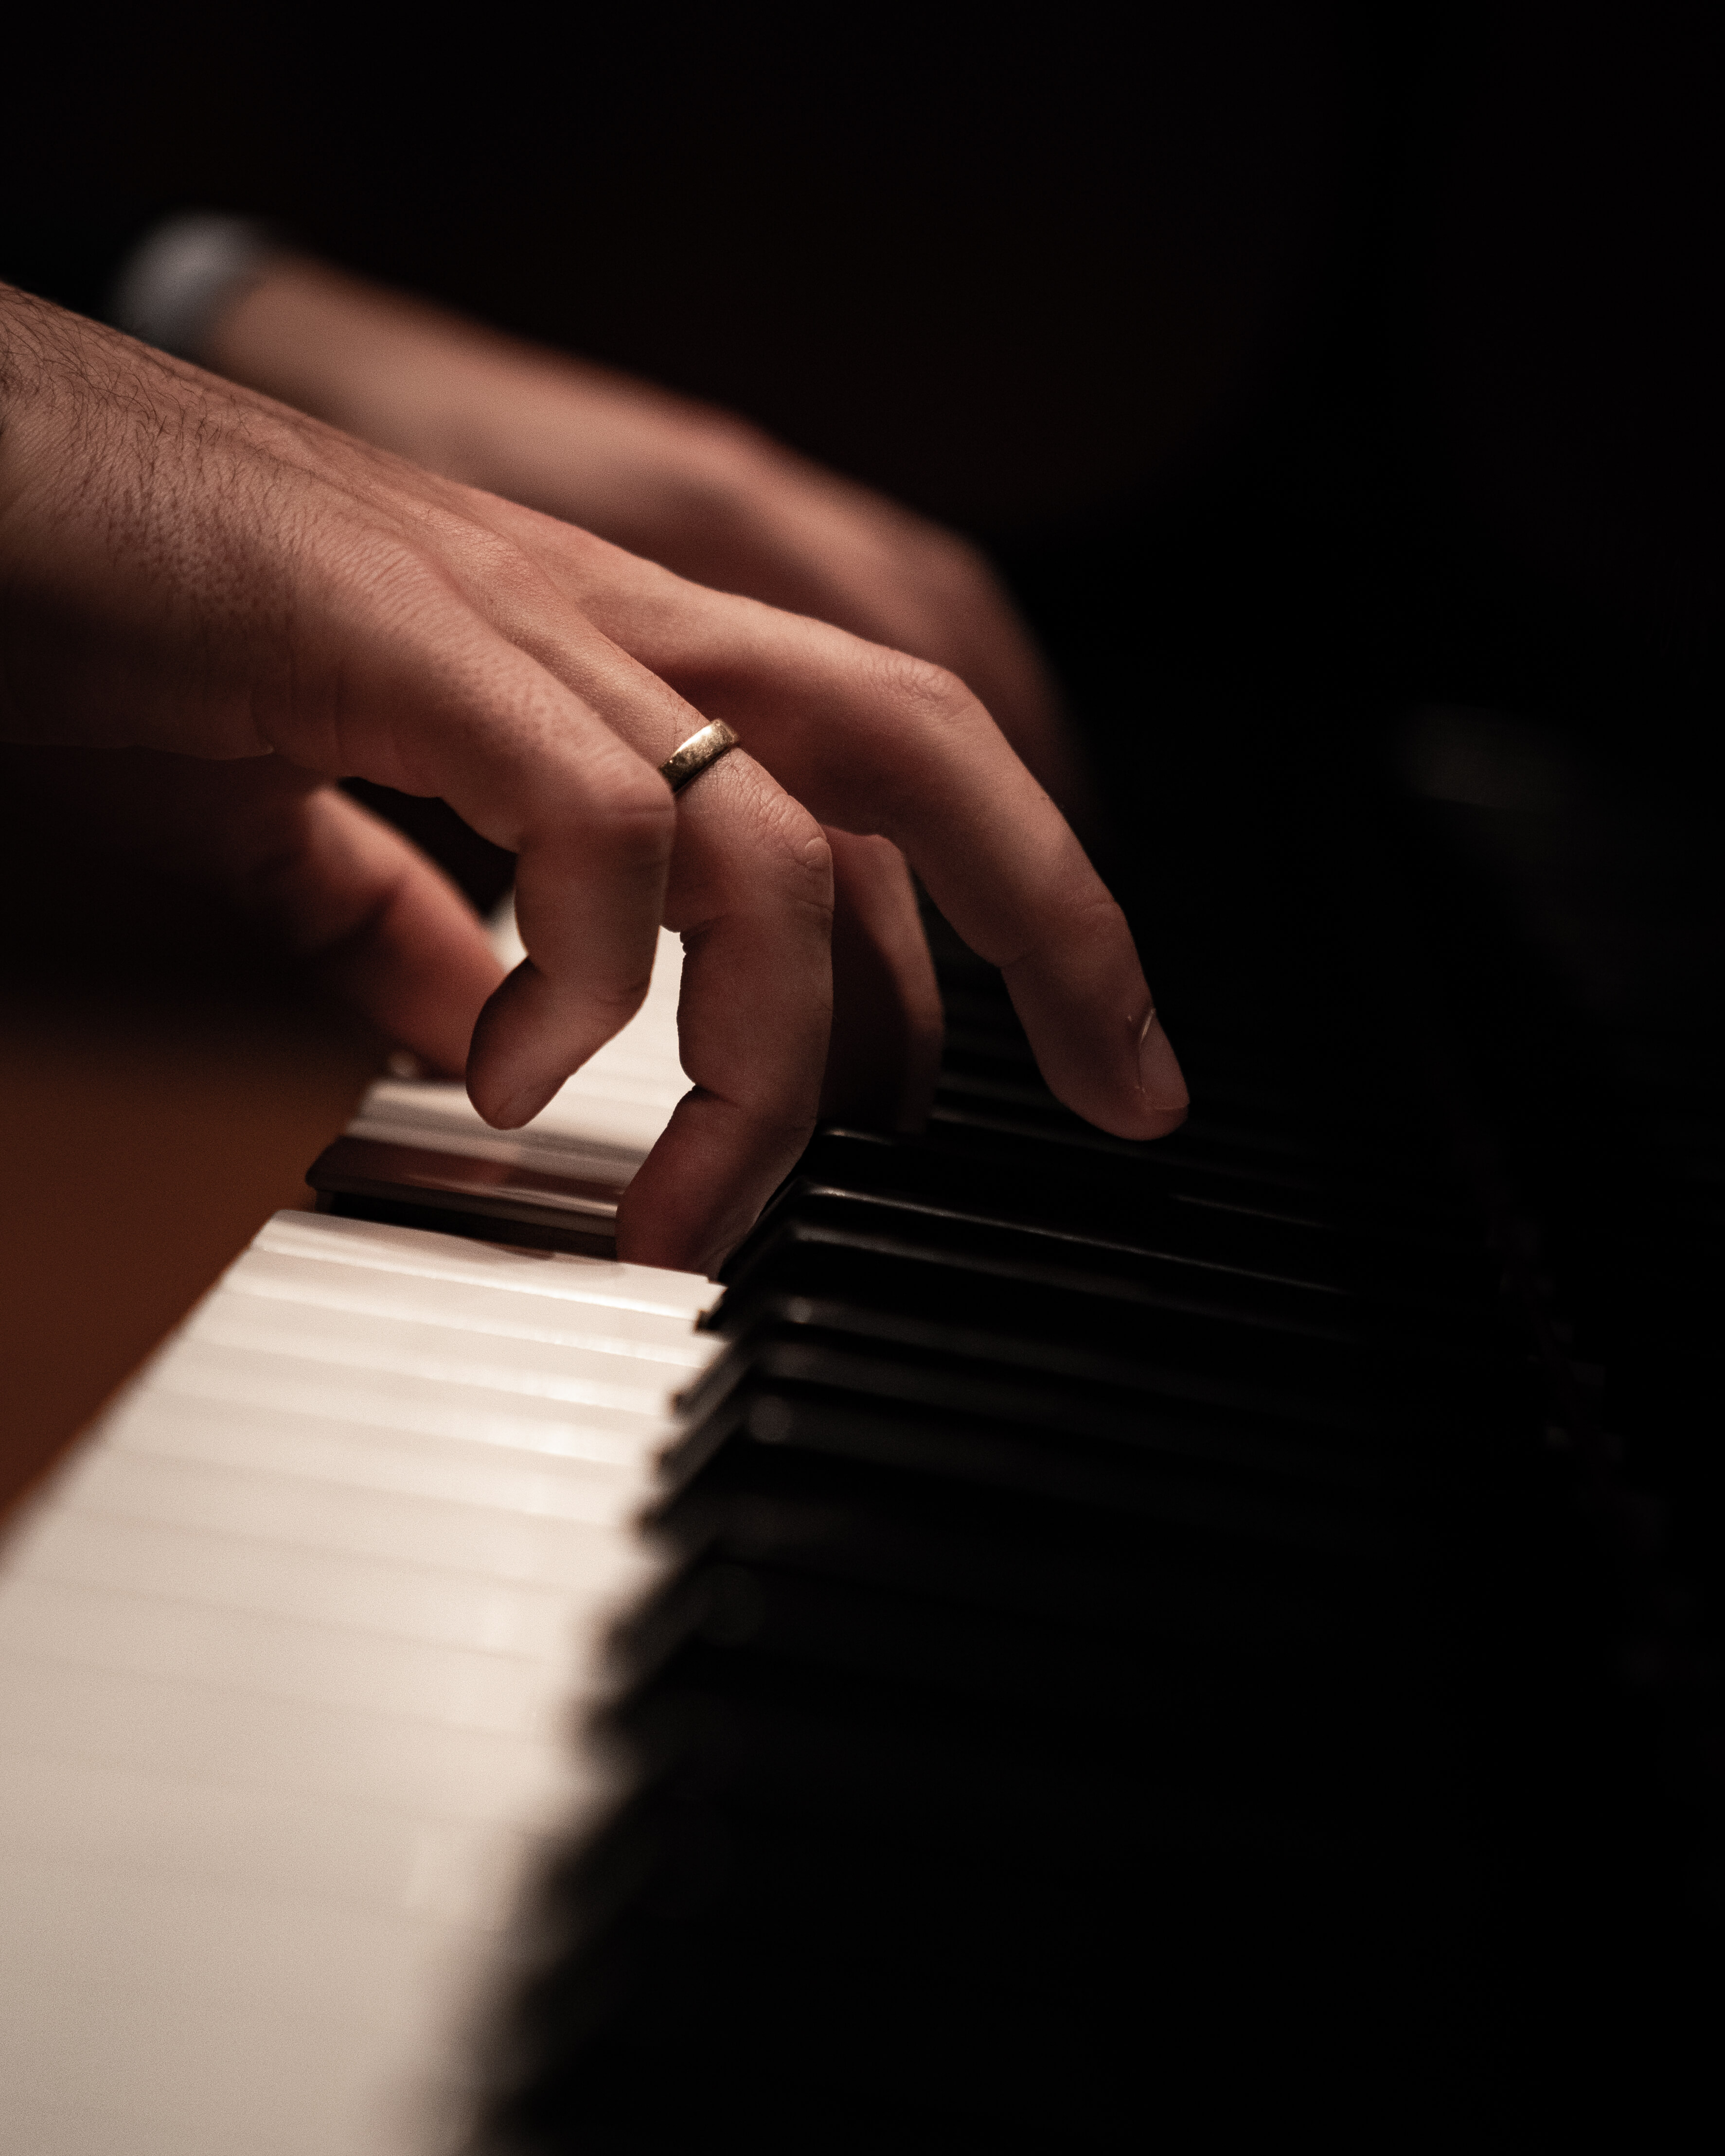 Hands on black and white piano keys.